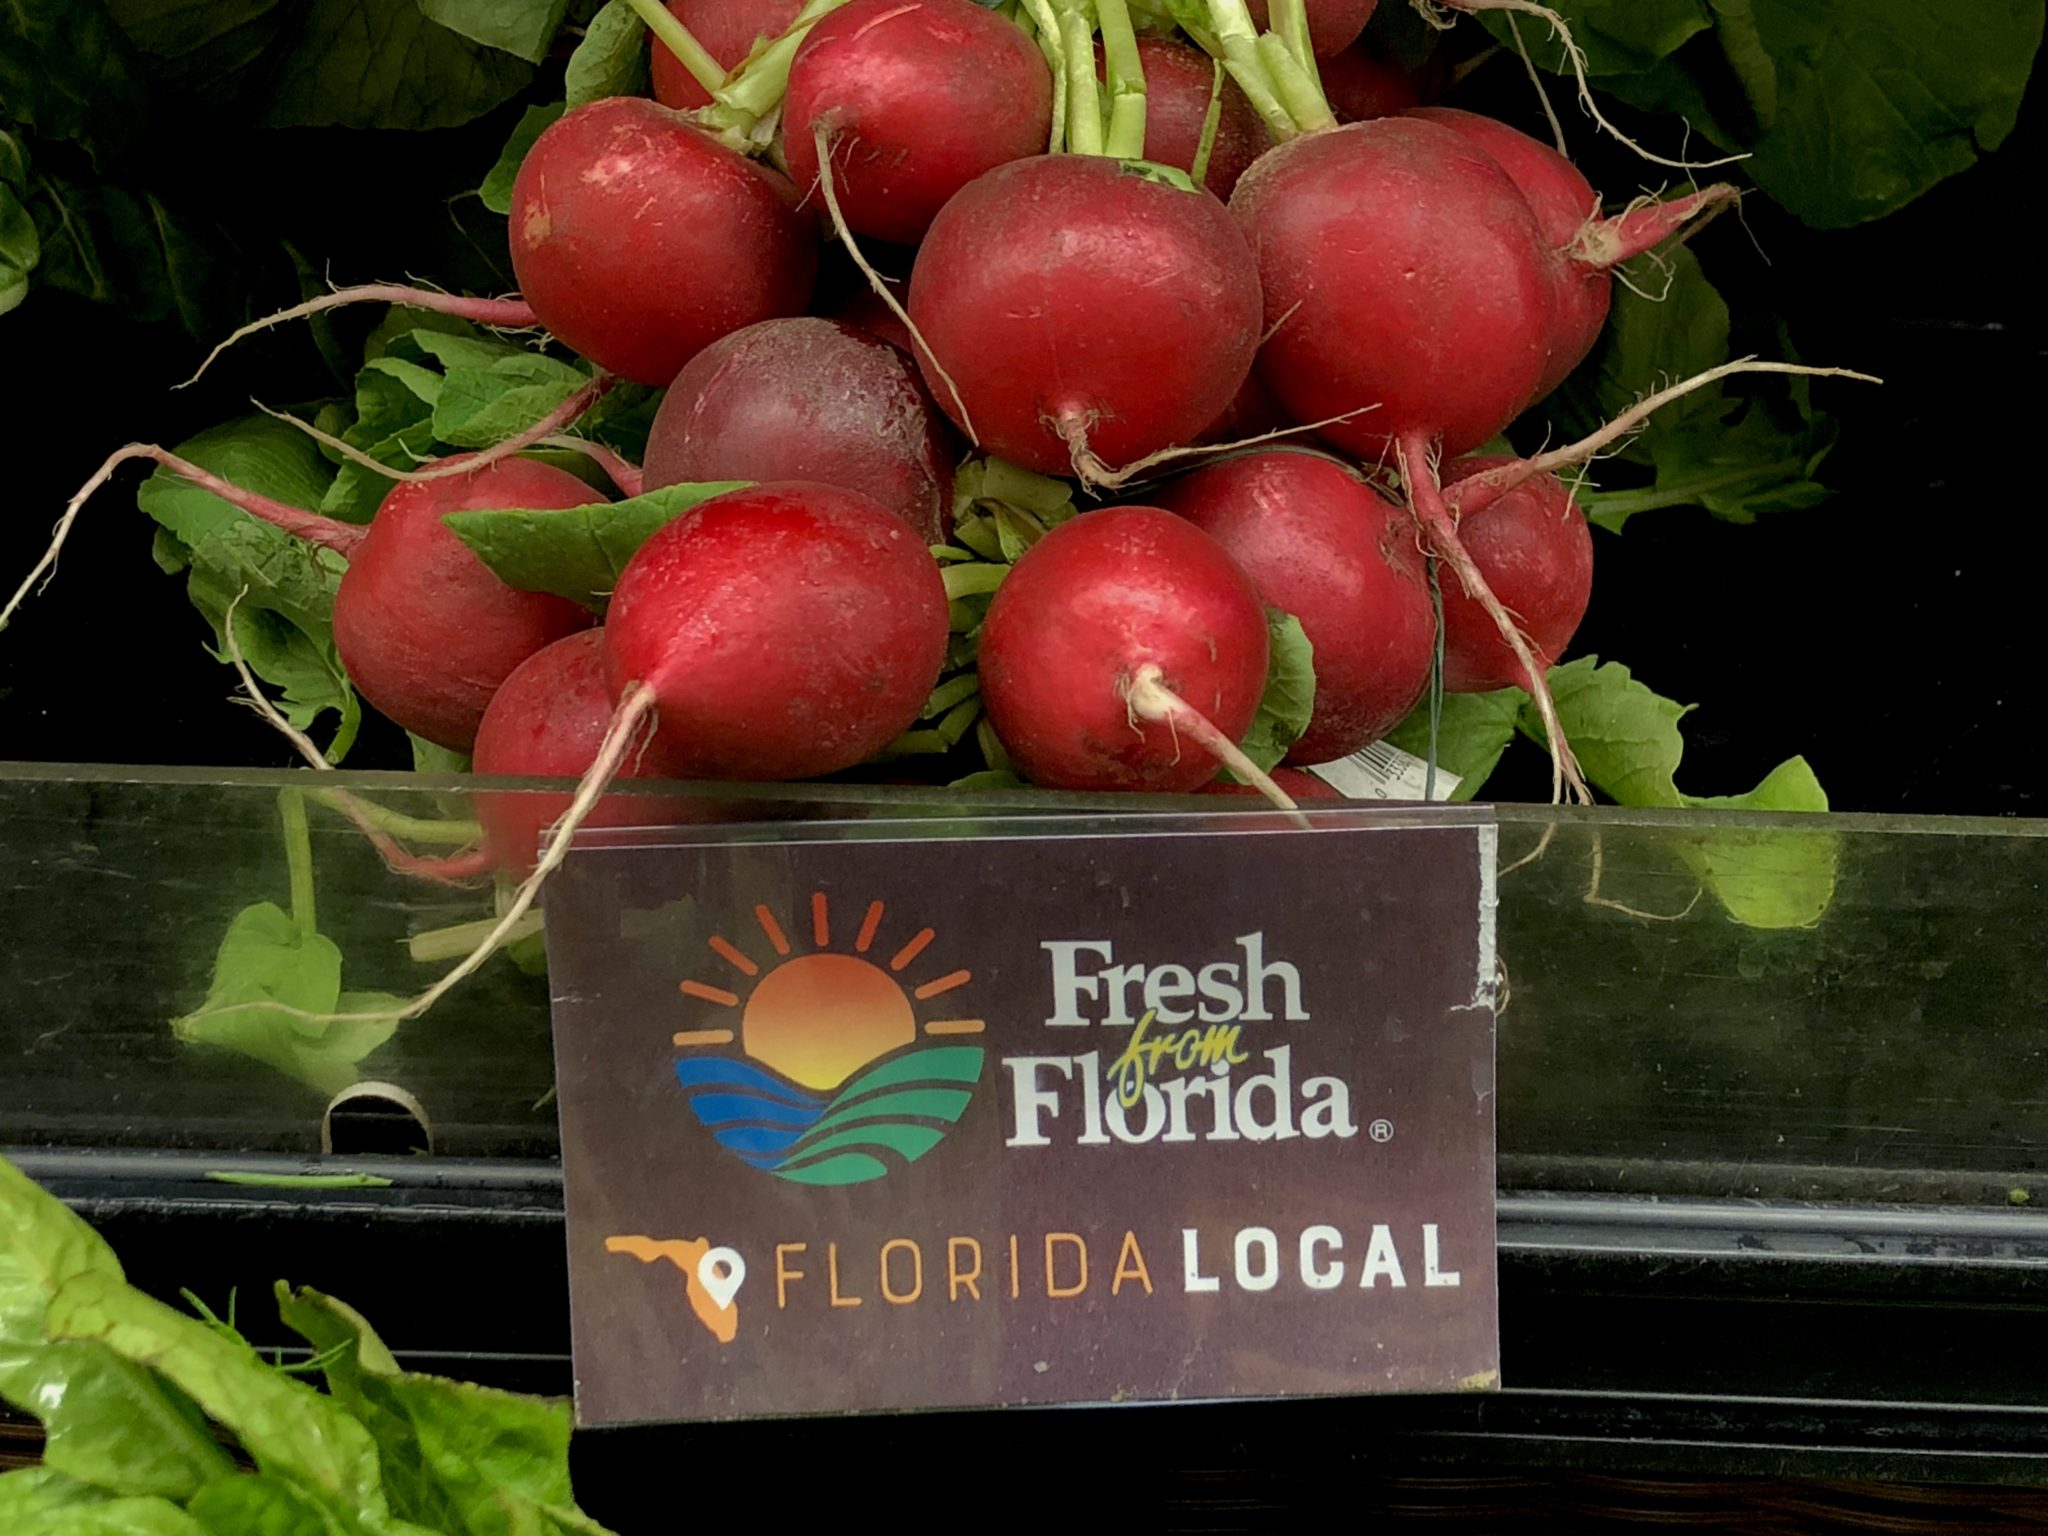 Fresh from Florida Radishes from Publix